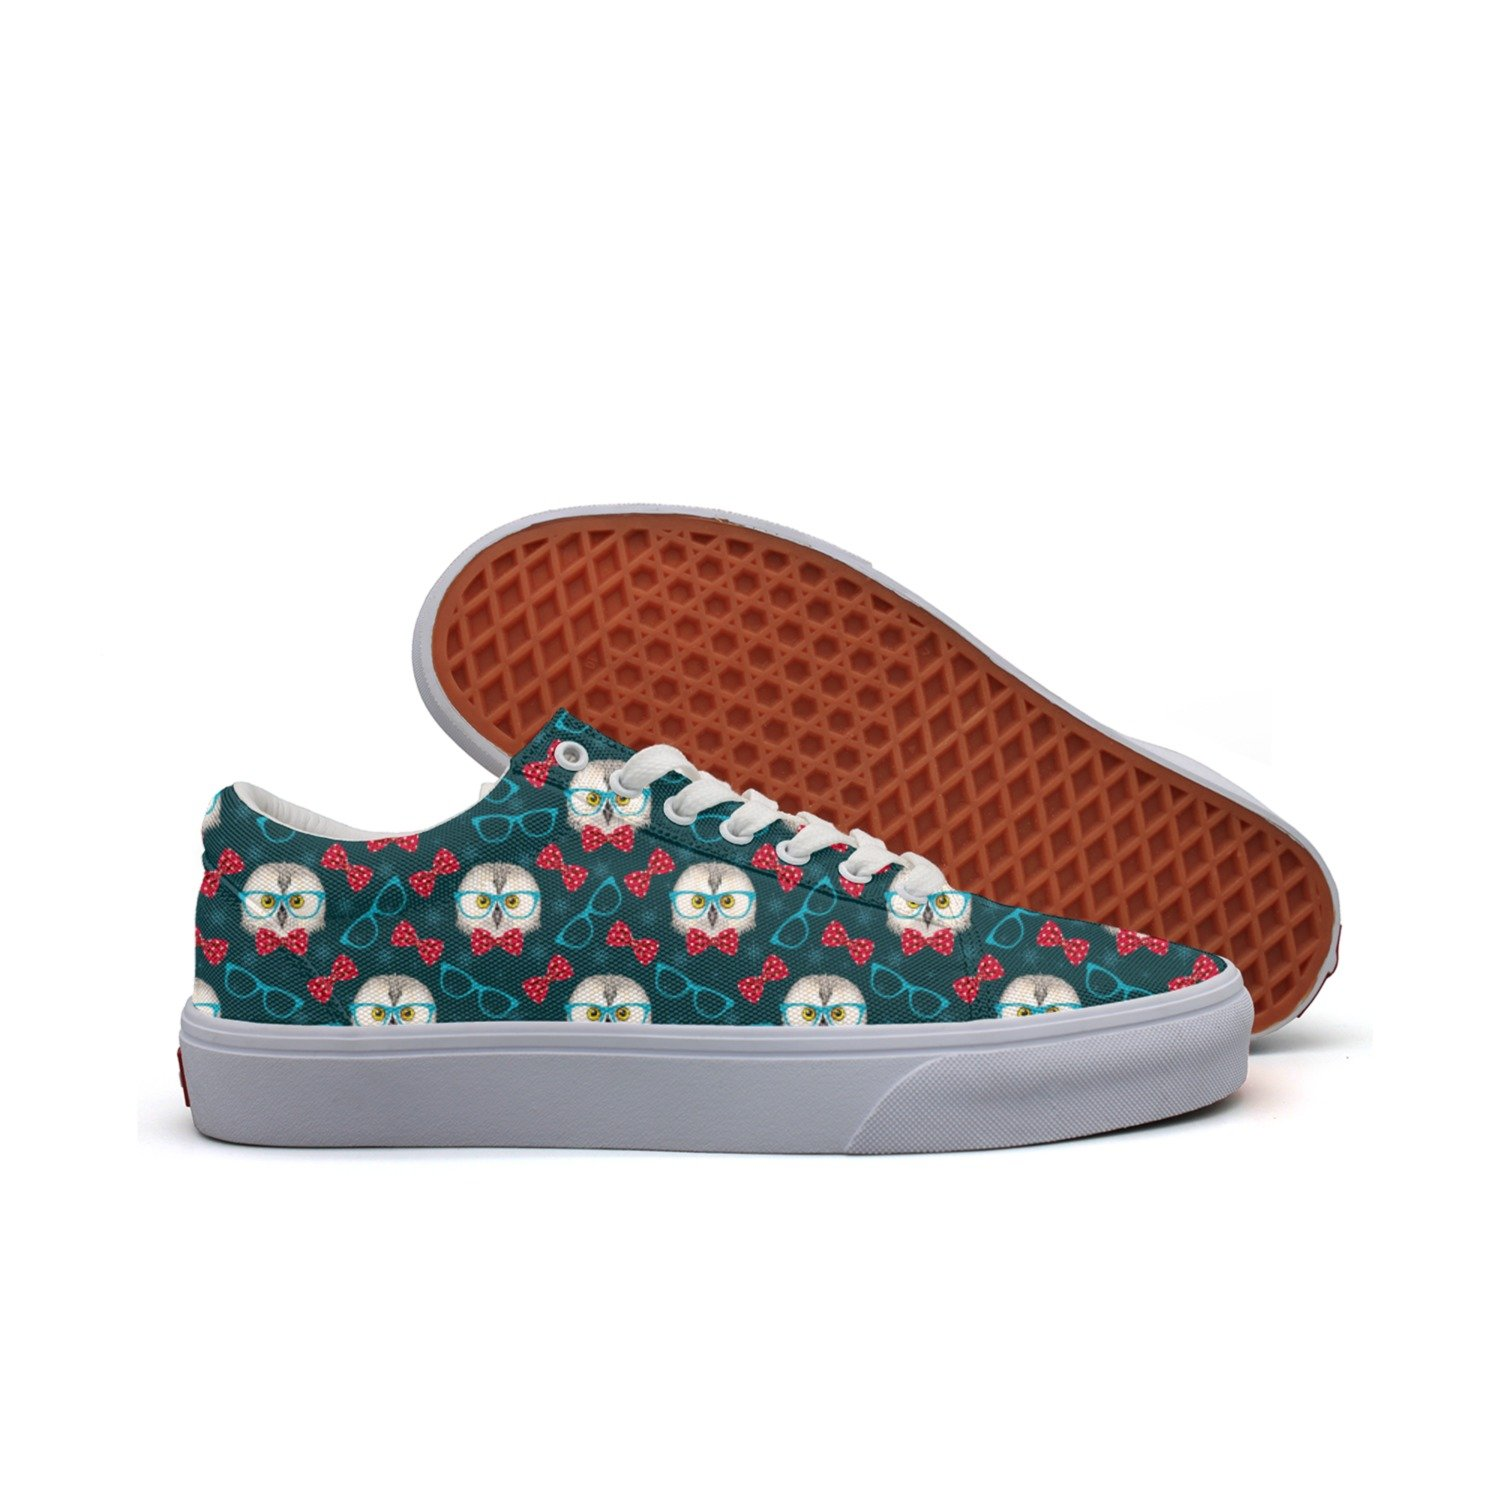 Owl With Glasses Women's Casual Shoes Boat Sports Nursing Gym